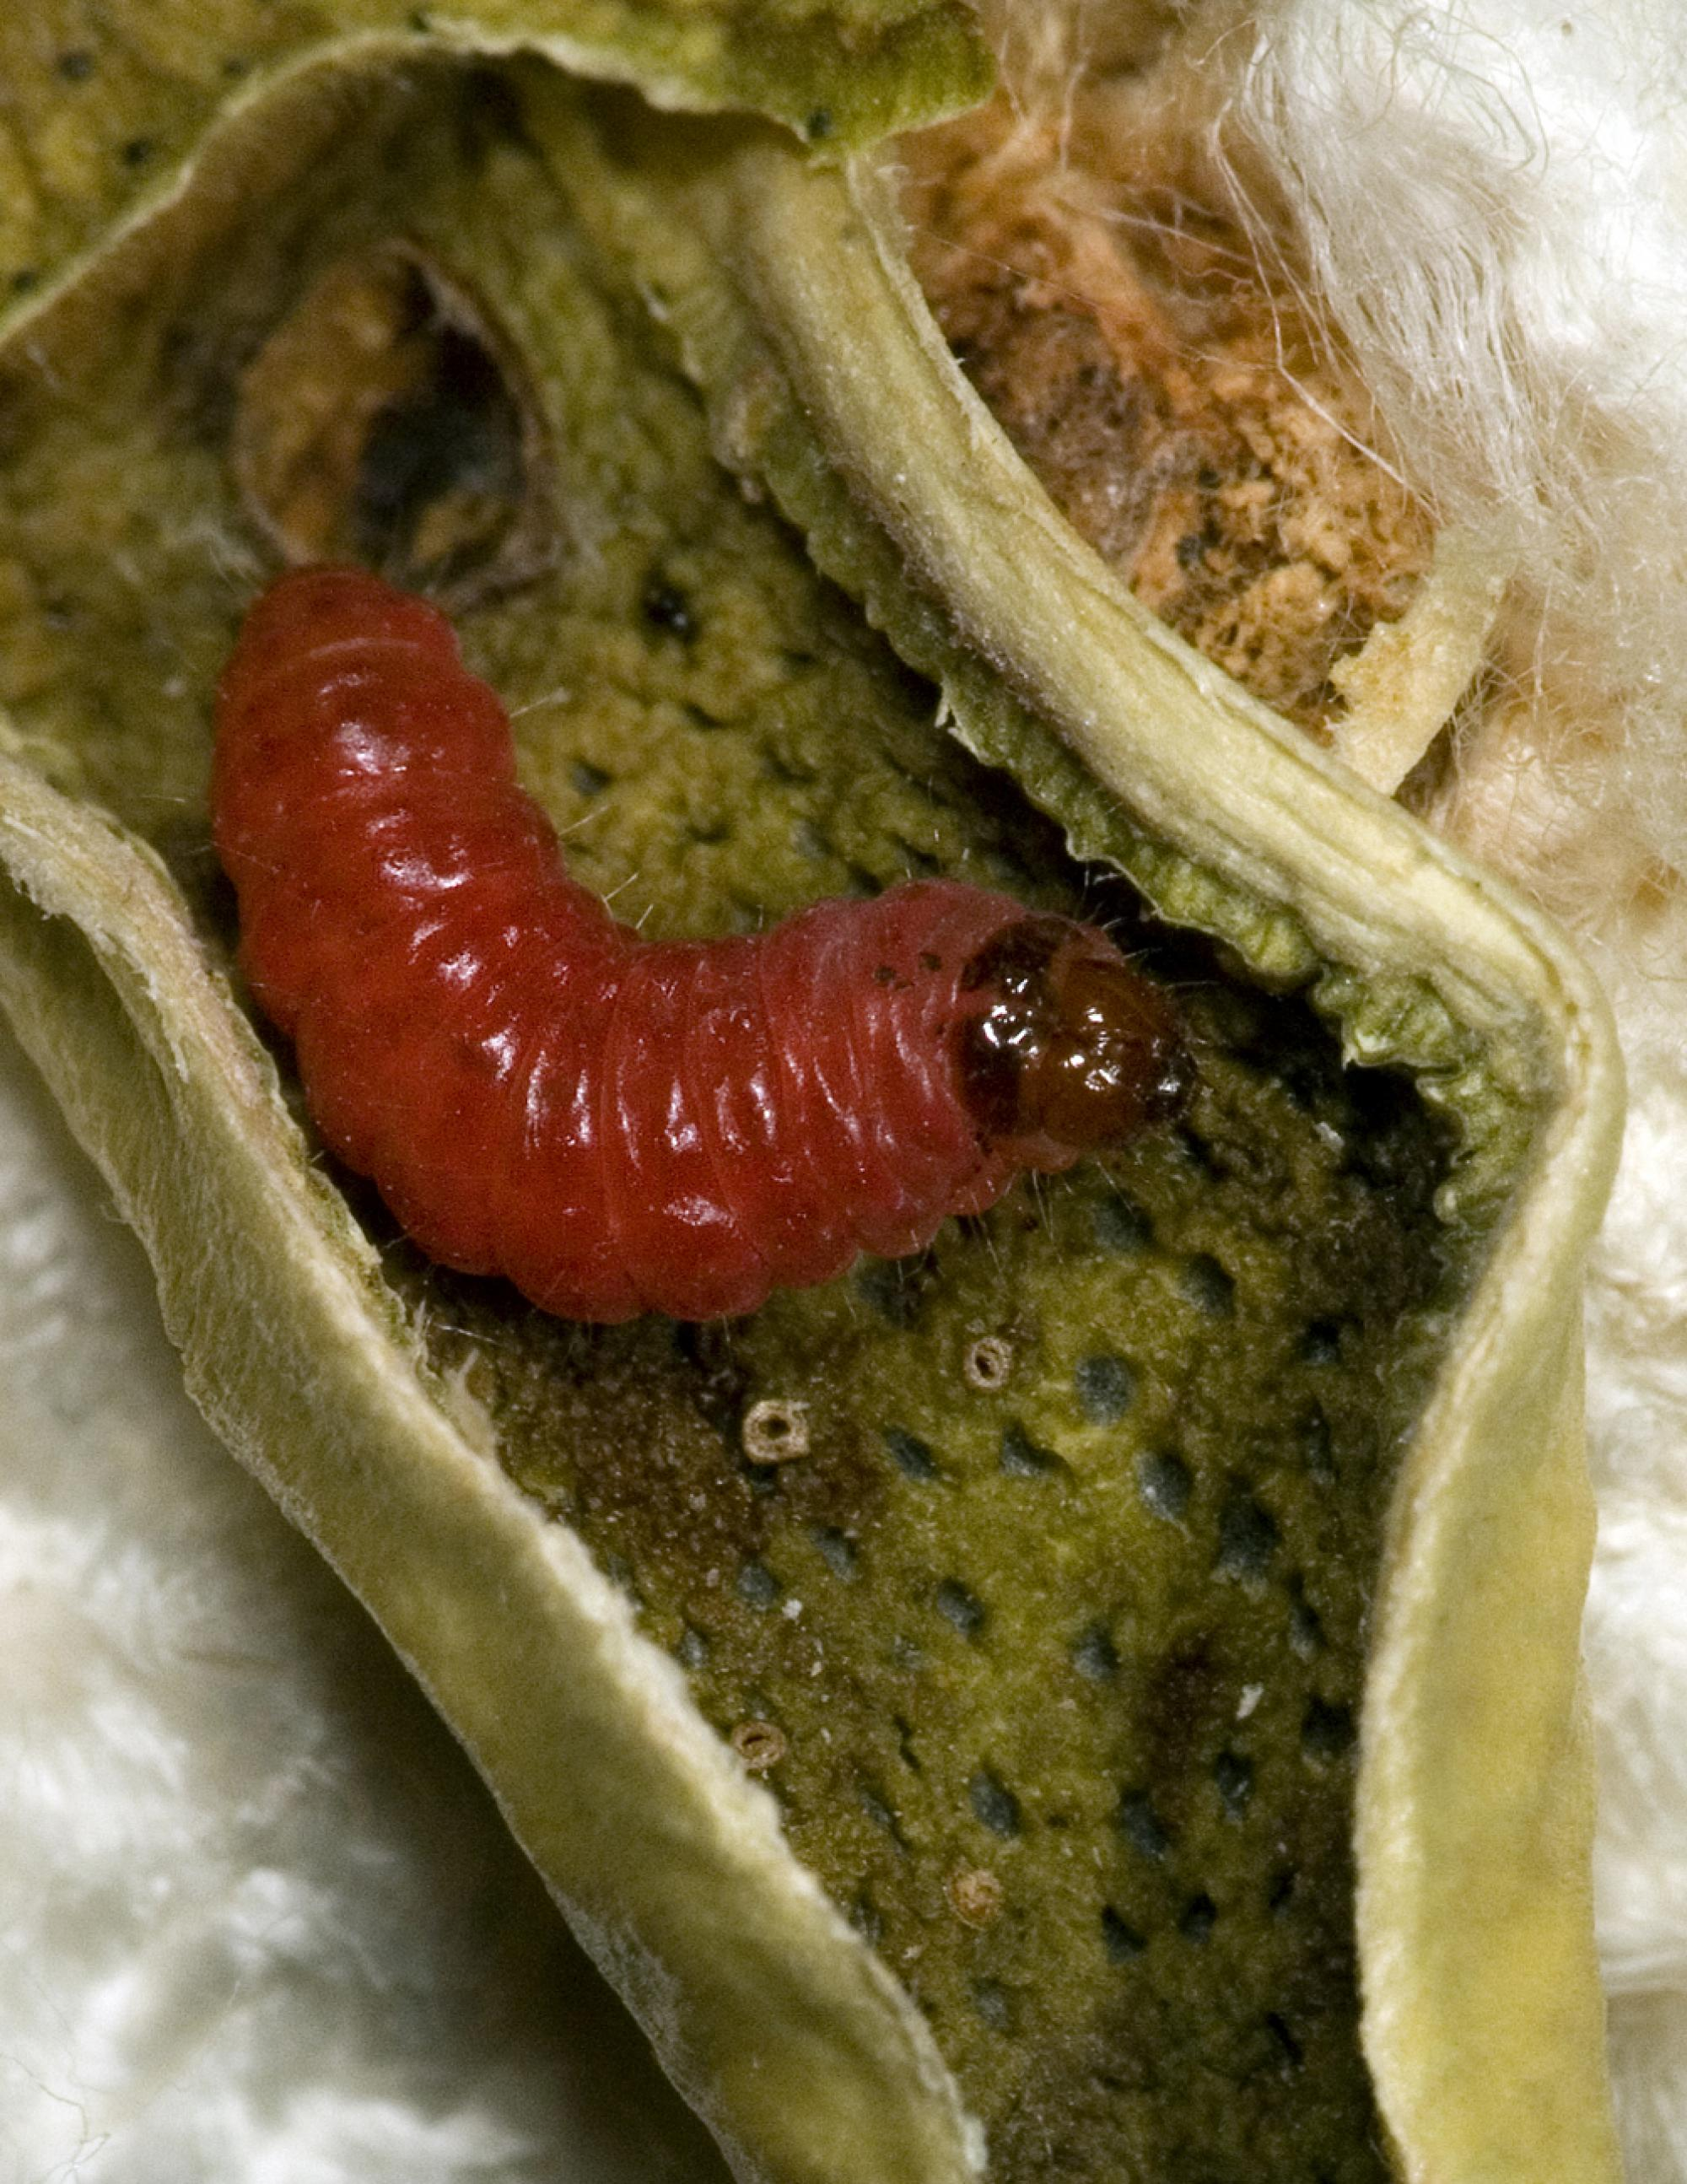 A pink bollworm caterpillar emerges after devouring the seeds within a cotton boll. This devastating pest quickly evolved resistance to genetically modified cotton in India, but not in the Southwestern United States where a coordinated resistance manageme